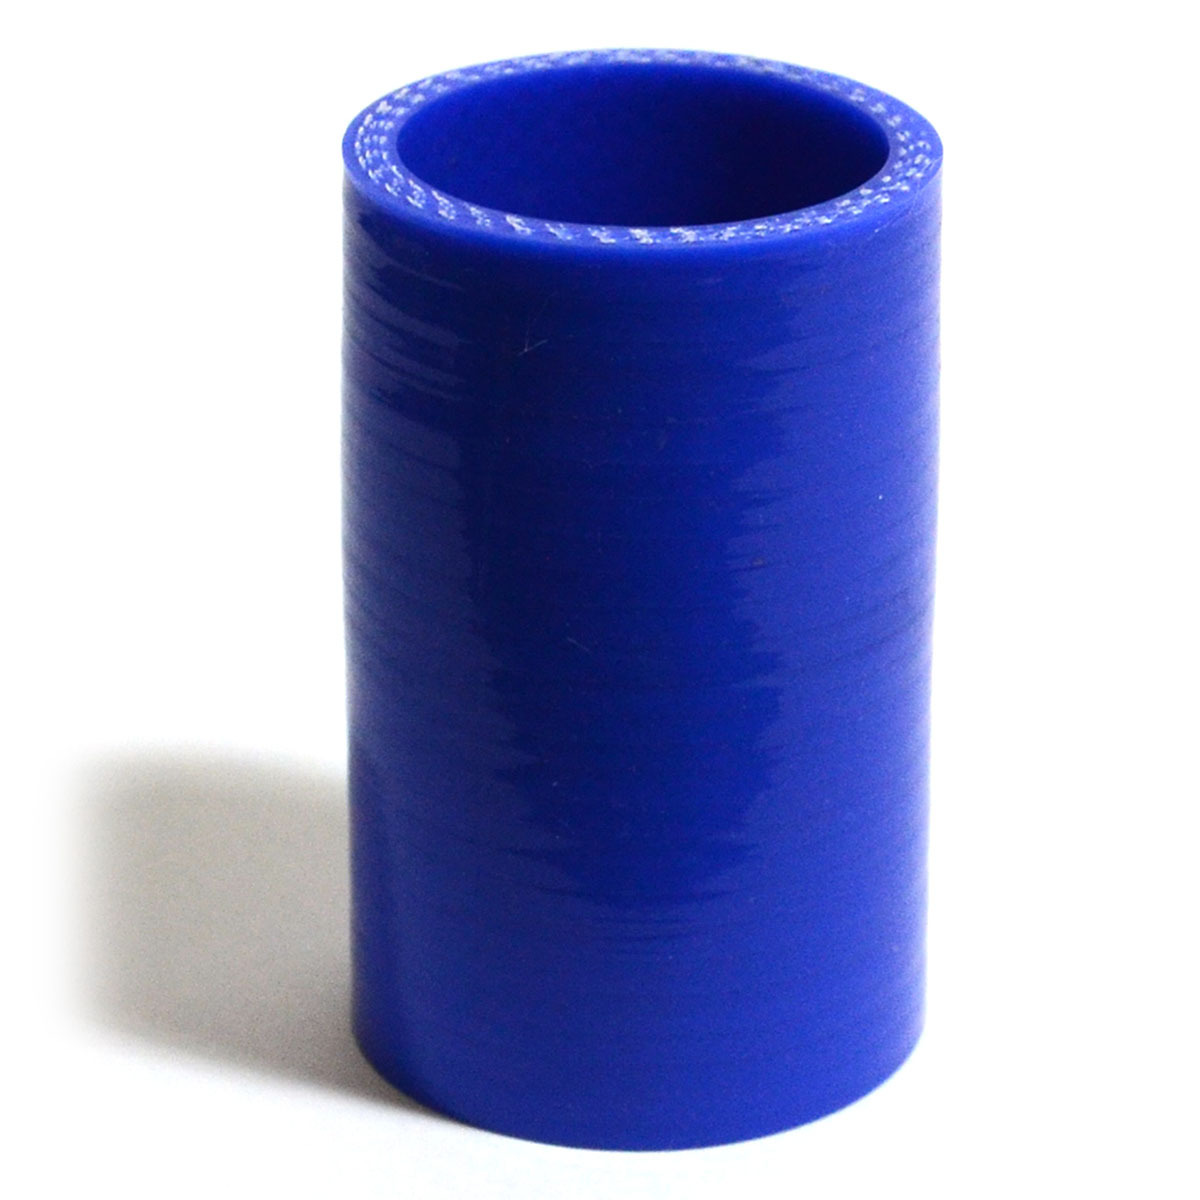 Straight 4 Ply Silicone Hose 32mm x 32mm x 76mm Blue